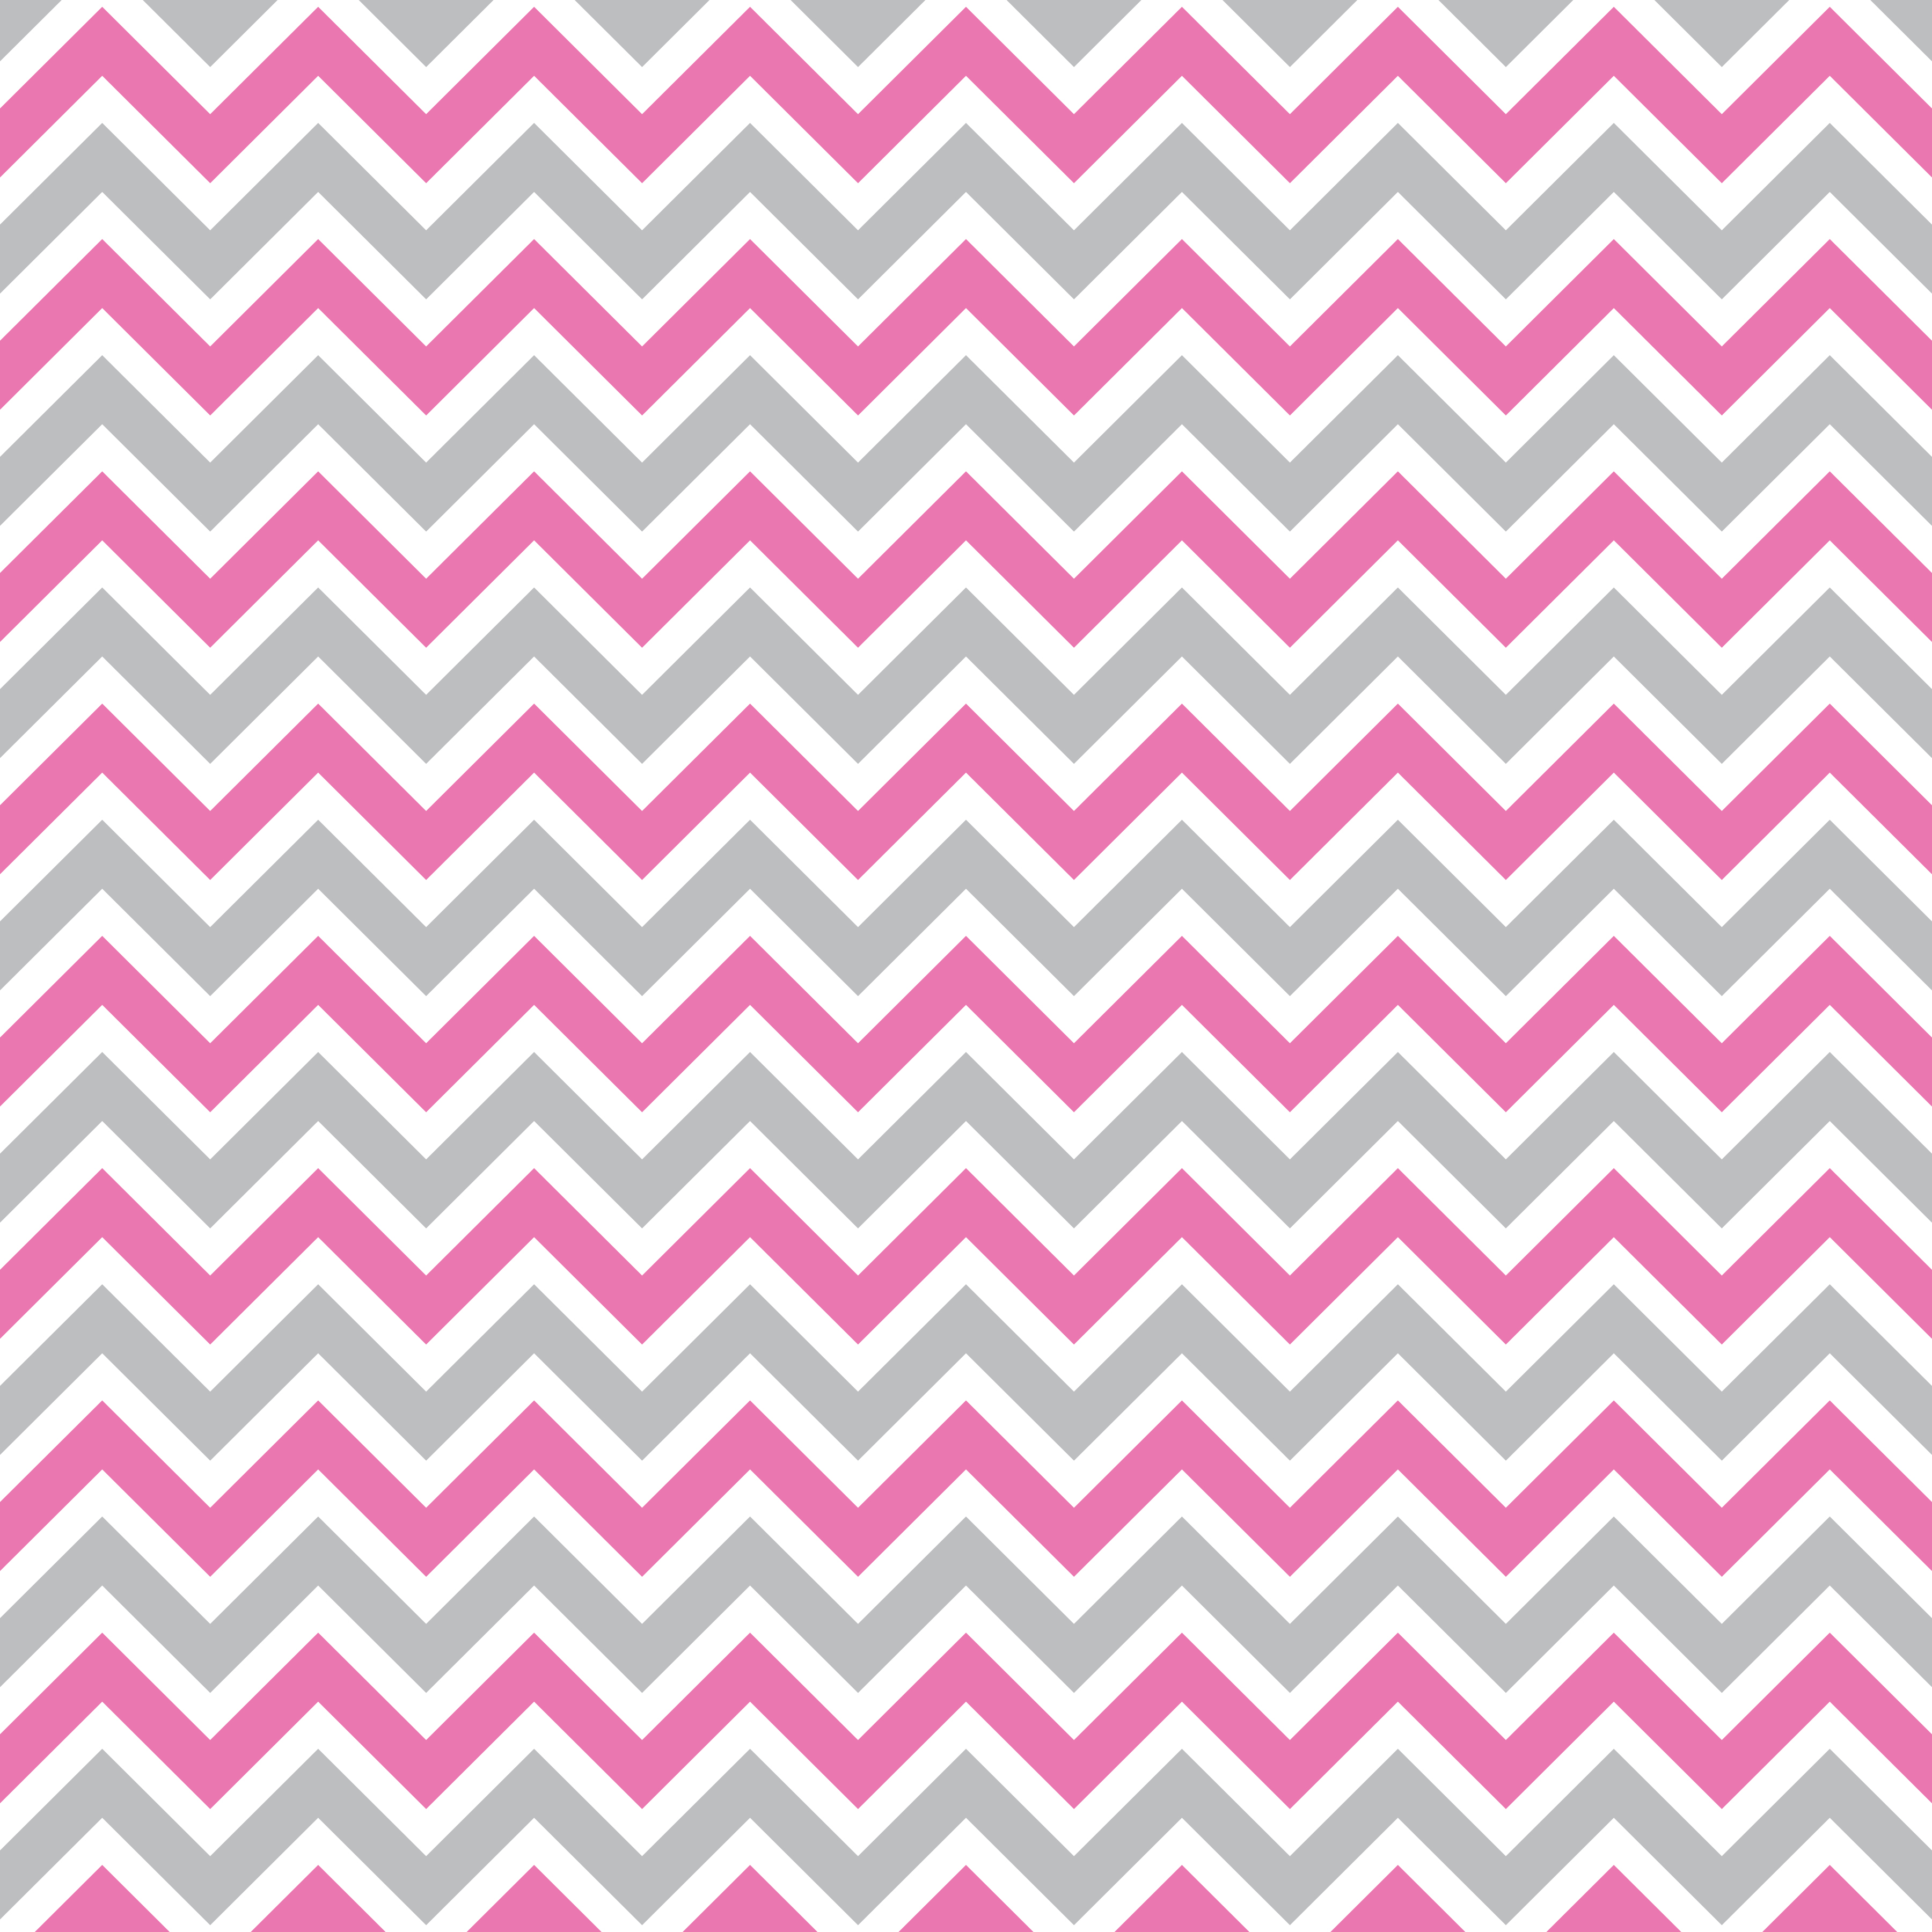 Iphone Moving Wallpaper: Download Pink And White Zig Zag Wallpaper Gallery